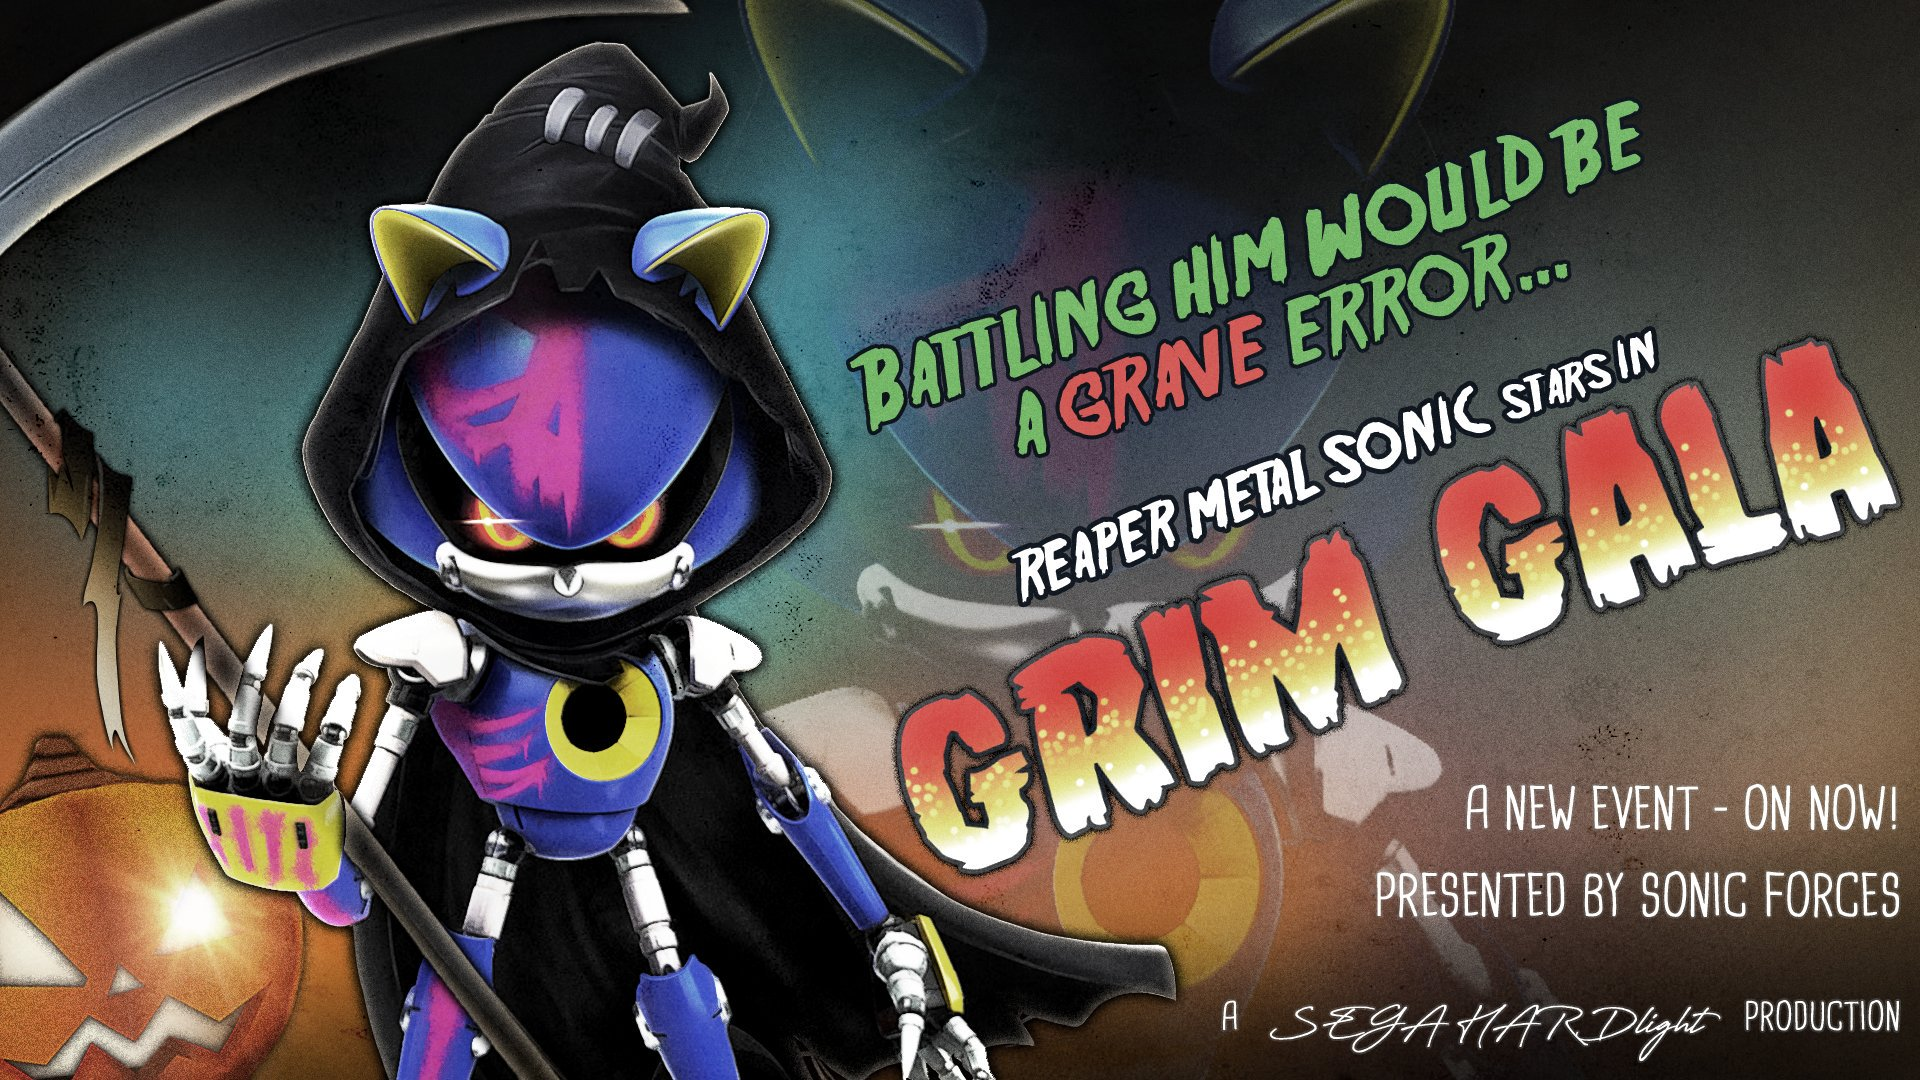 Sonic Forces Grim Gala Begins Reaper Metal Sonic Up For Grabs